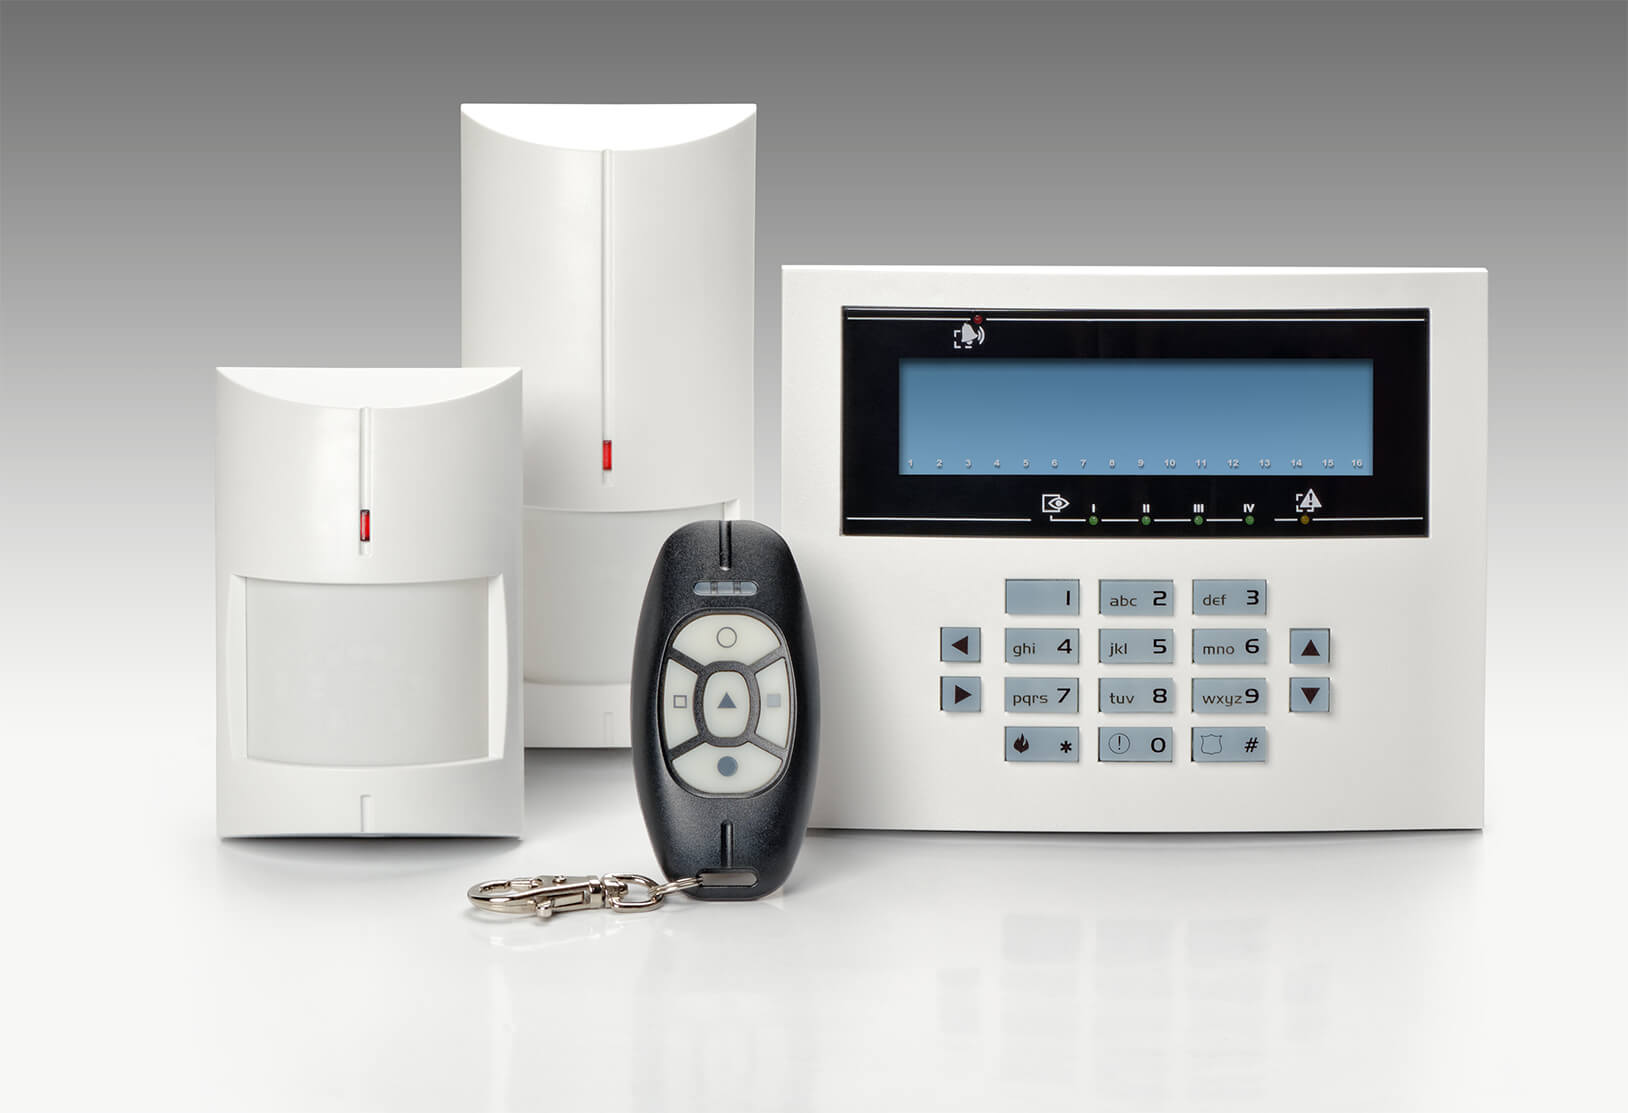 Commercial Burglar Alarms For Business in Islington N16  - Local Islington N16 burglar alarm company.Call 02078872244 - Dedicated to Safety & Security. Companies, shops and homes ..